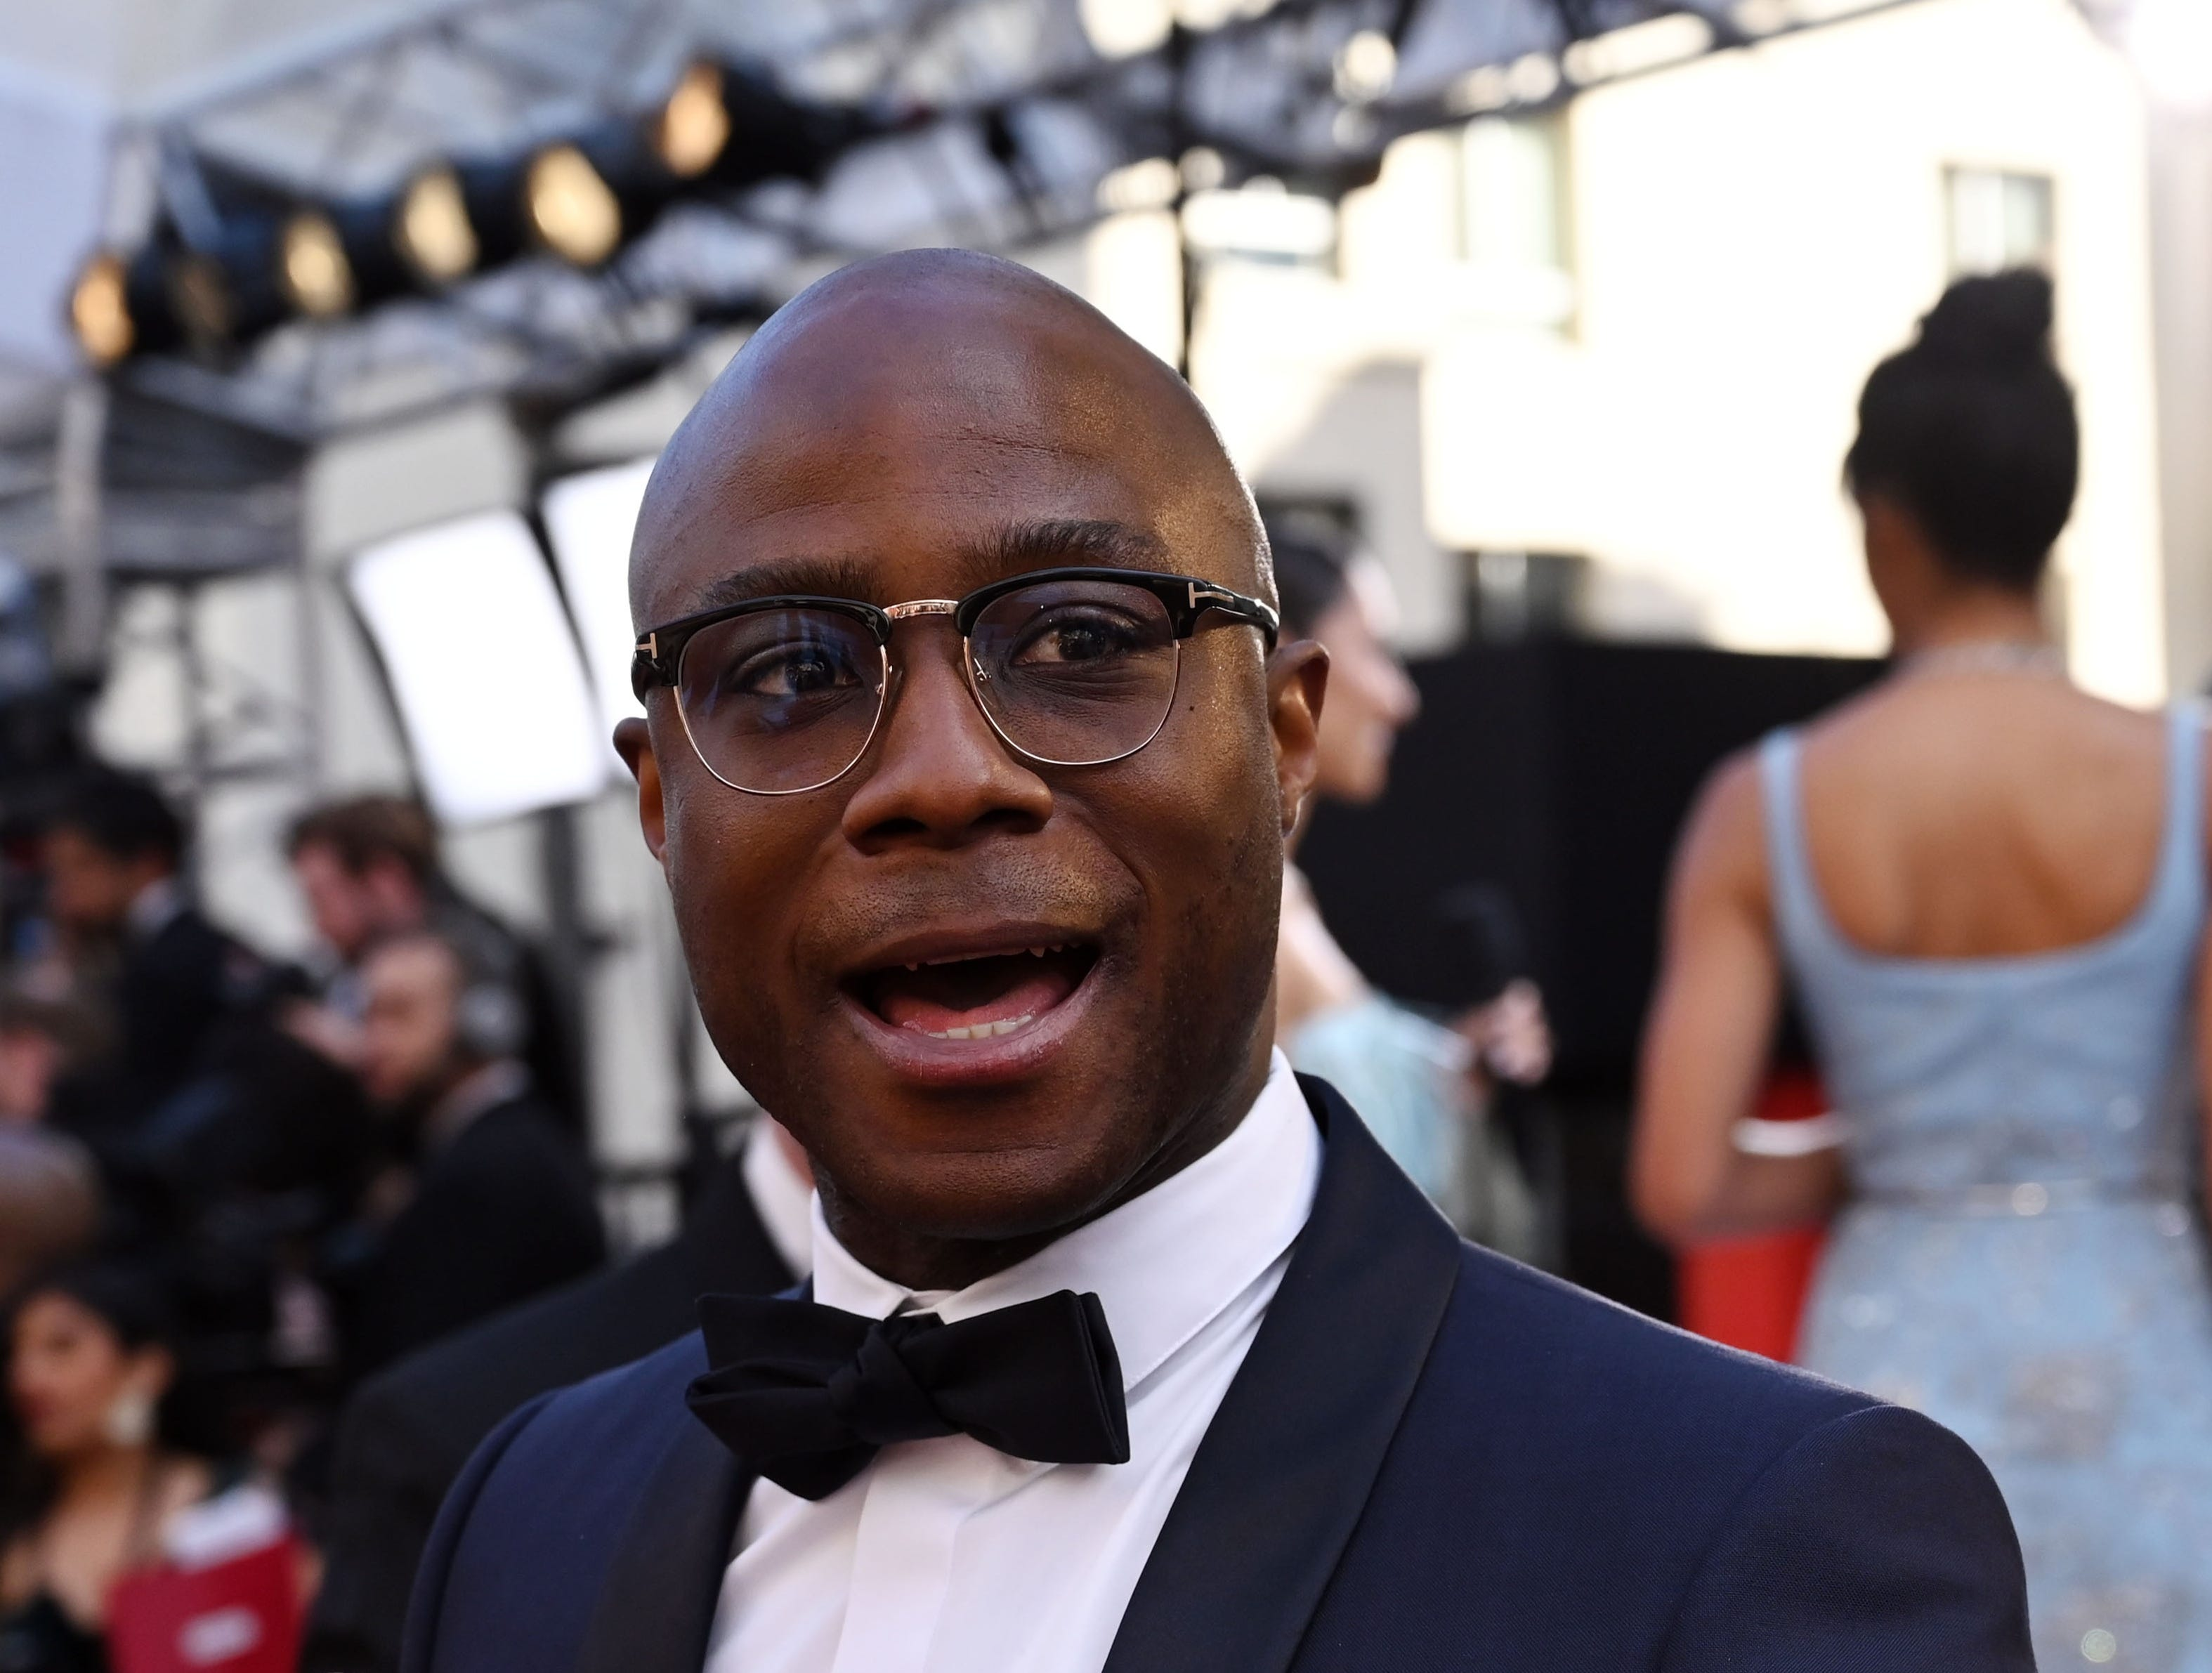 February 24, 2019; Los Angeles, CA, USA; Barry Jenkins arrives at the 91st Academy Awards at the Dolby Theatre. Mandatory Credit: Robert Hanashiro-USA TODAY NETWORK (Via OlyDrop)